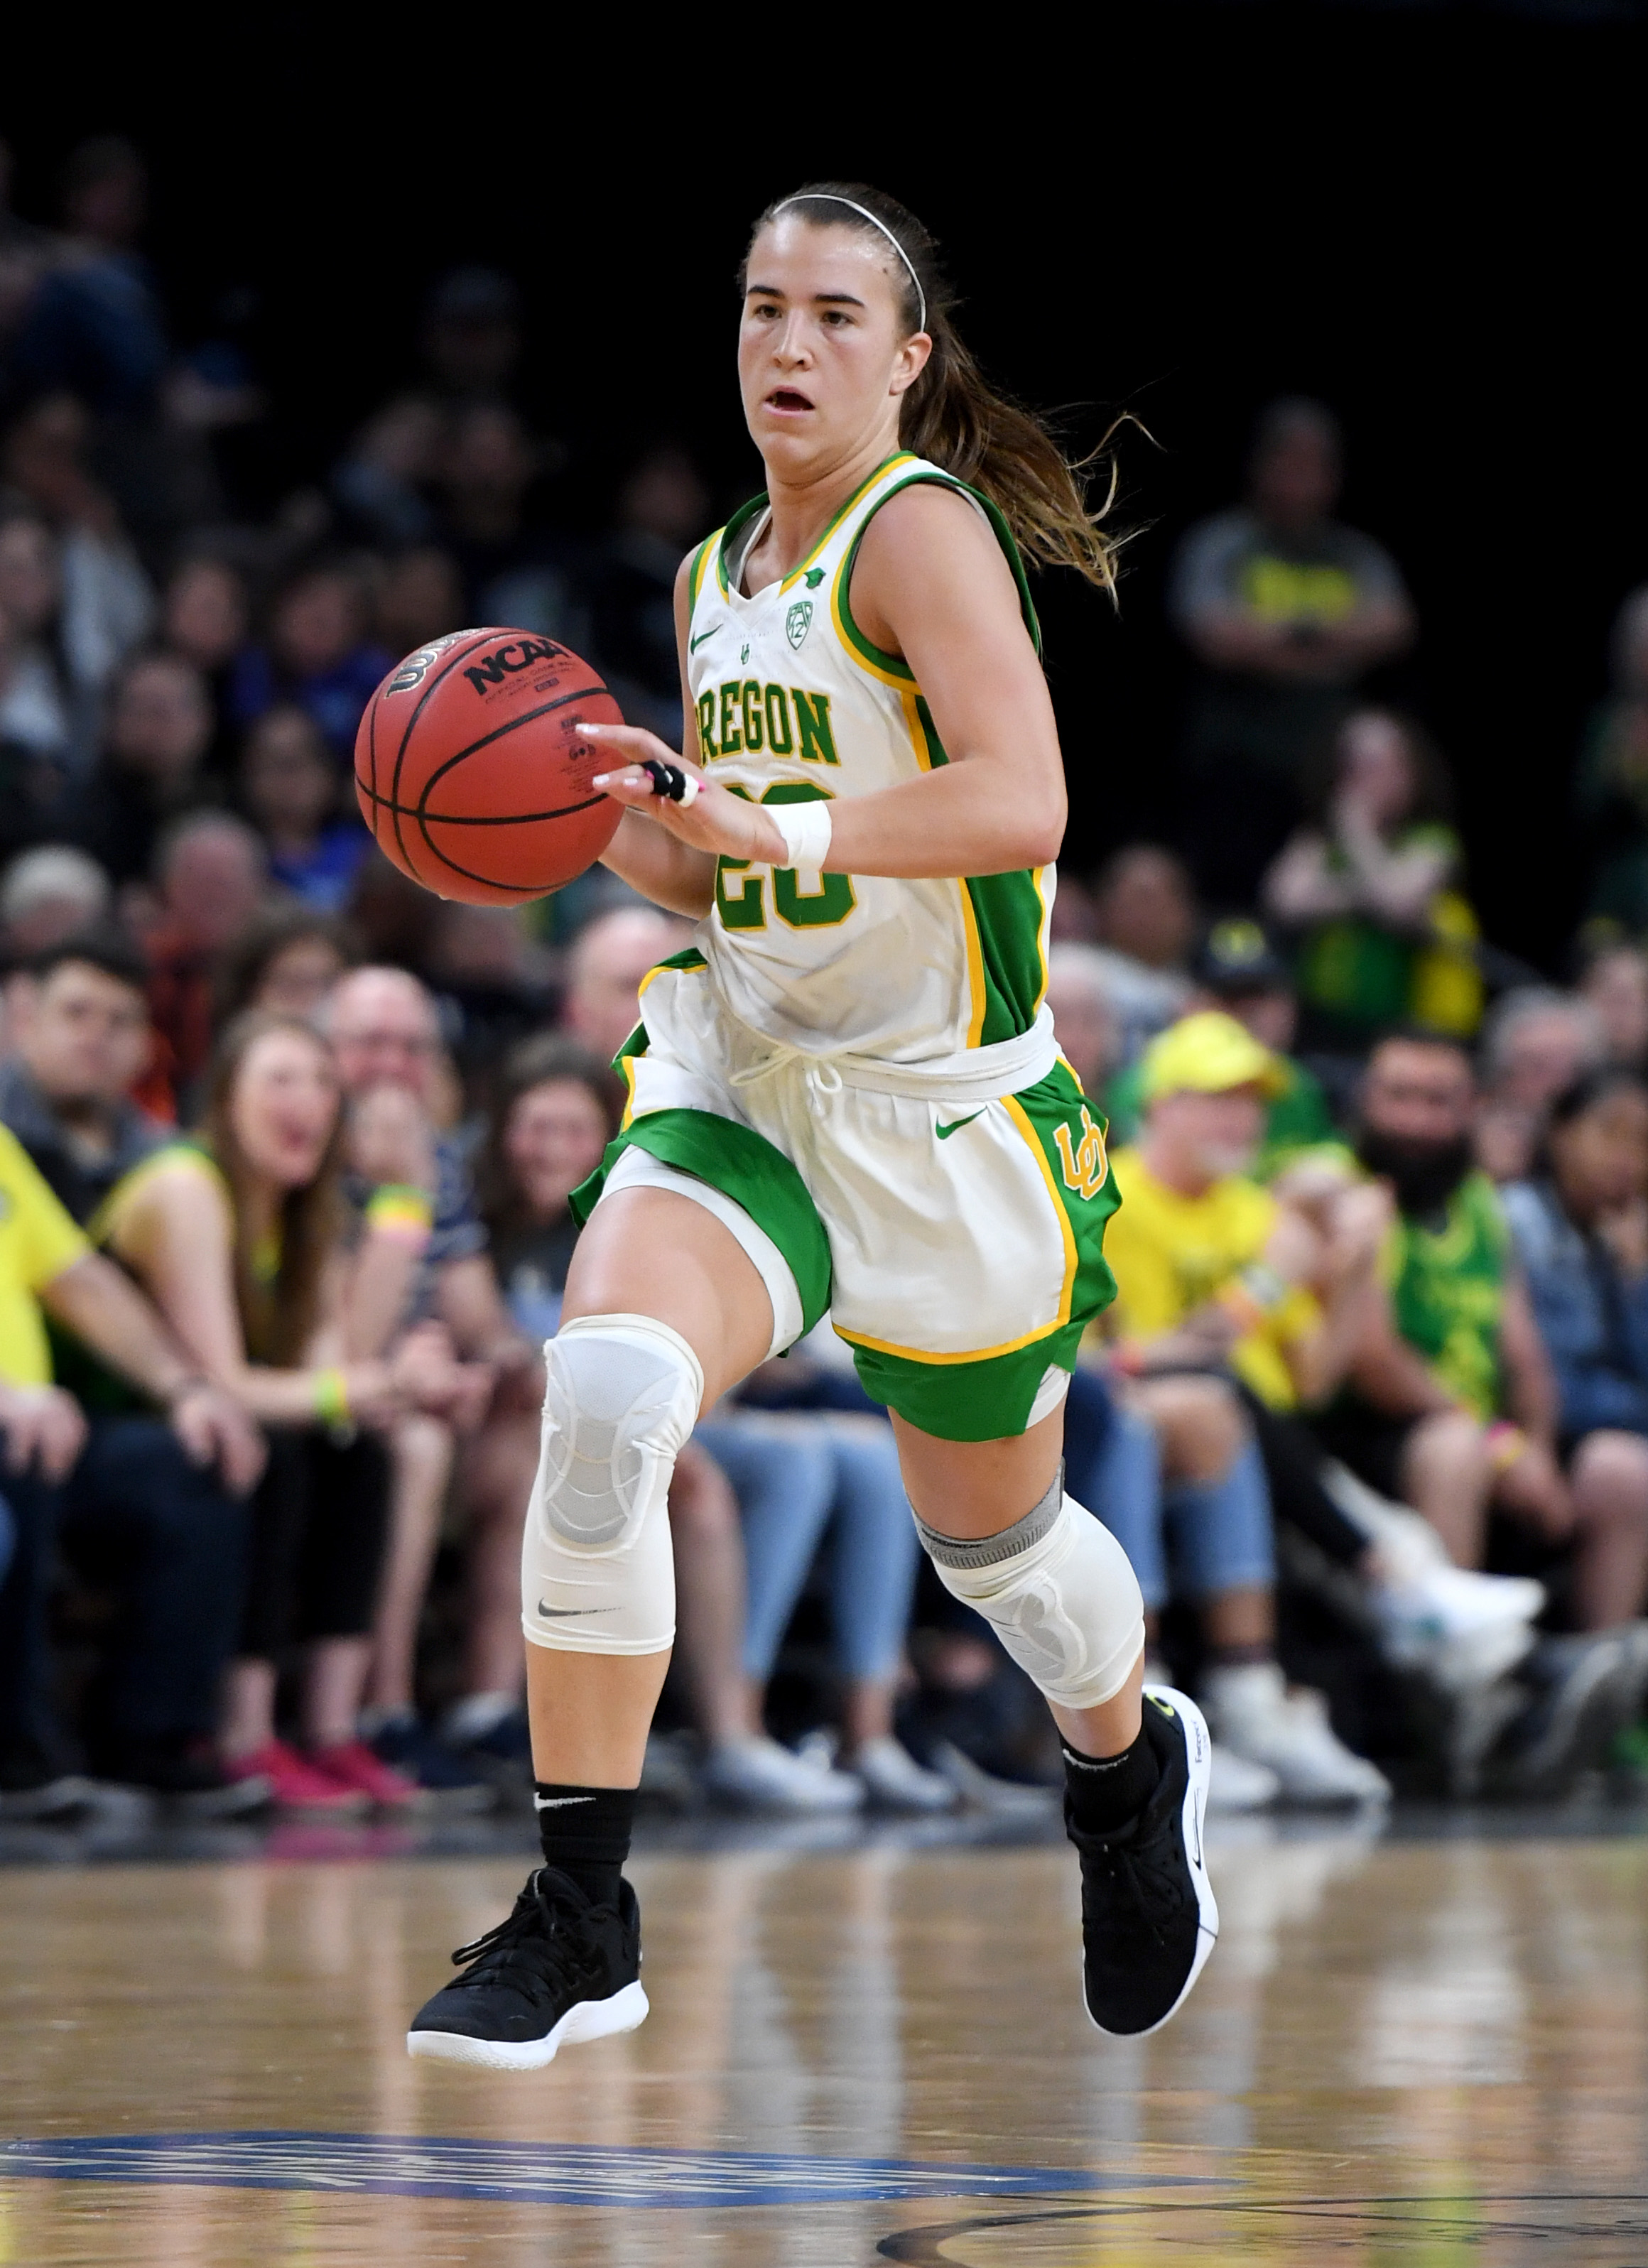 Sabrina Ionescu of the Oregon Ducks brings the ball up the court against the Stanford Cardinal during the championship game of the Pac-12 Conference women's basketball tournament at the Mandalay Bay Events Center on March 8, 2020 in Las Vegas, Nevada. The Ducks defeated the Cardinal 89-56.